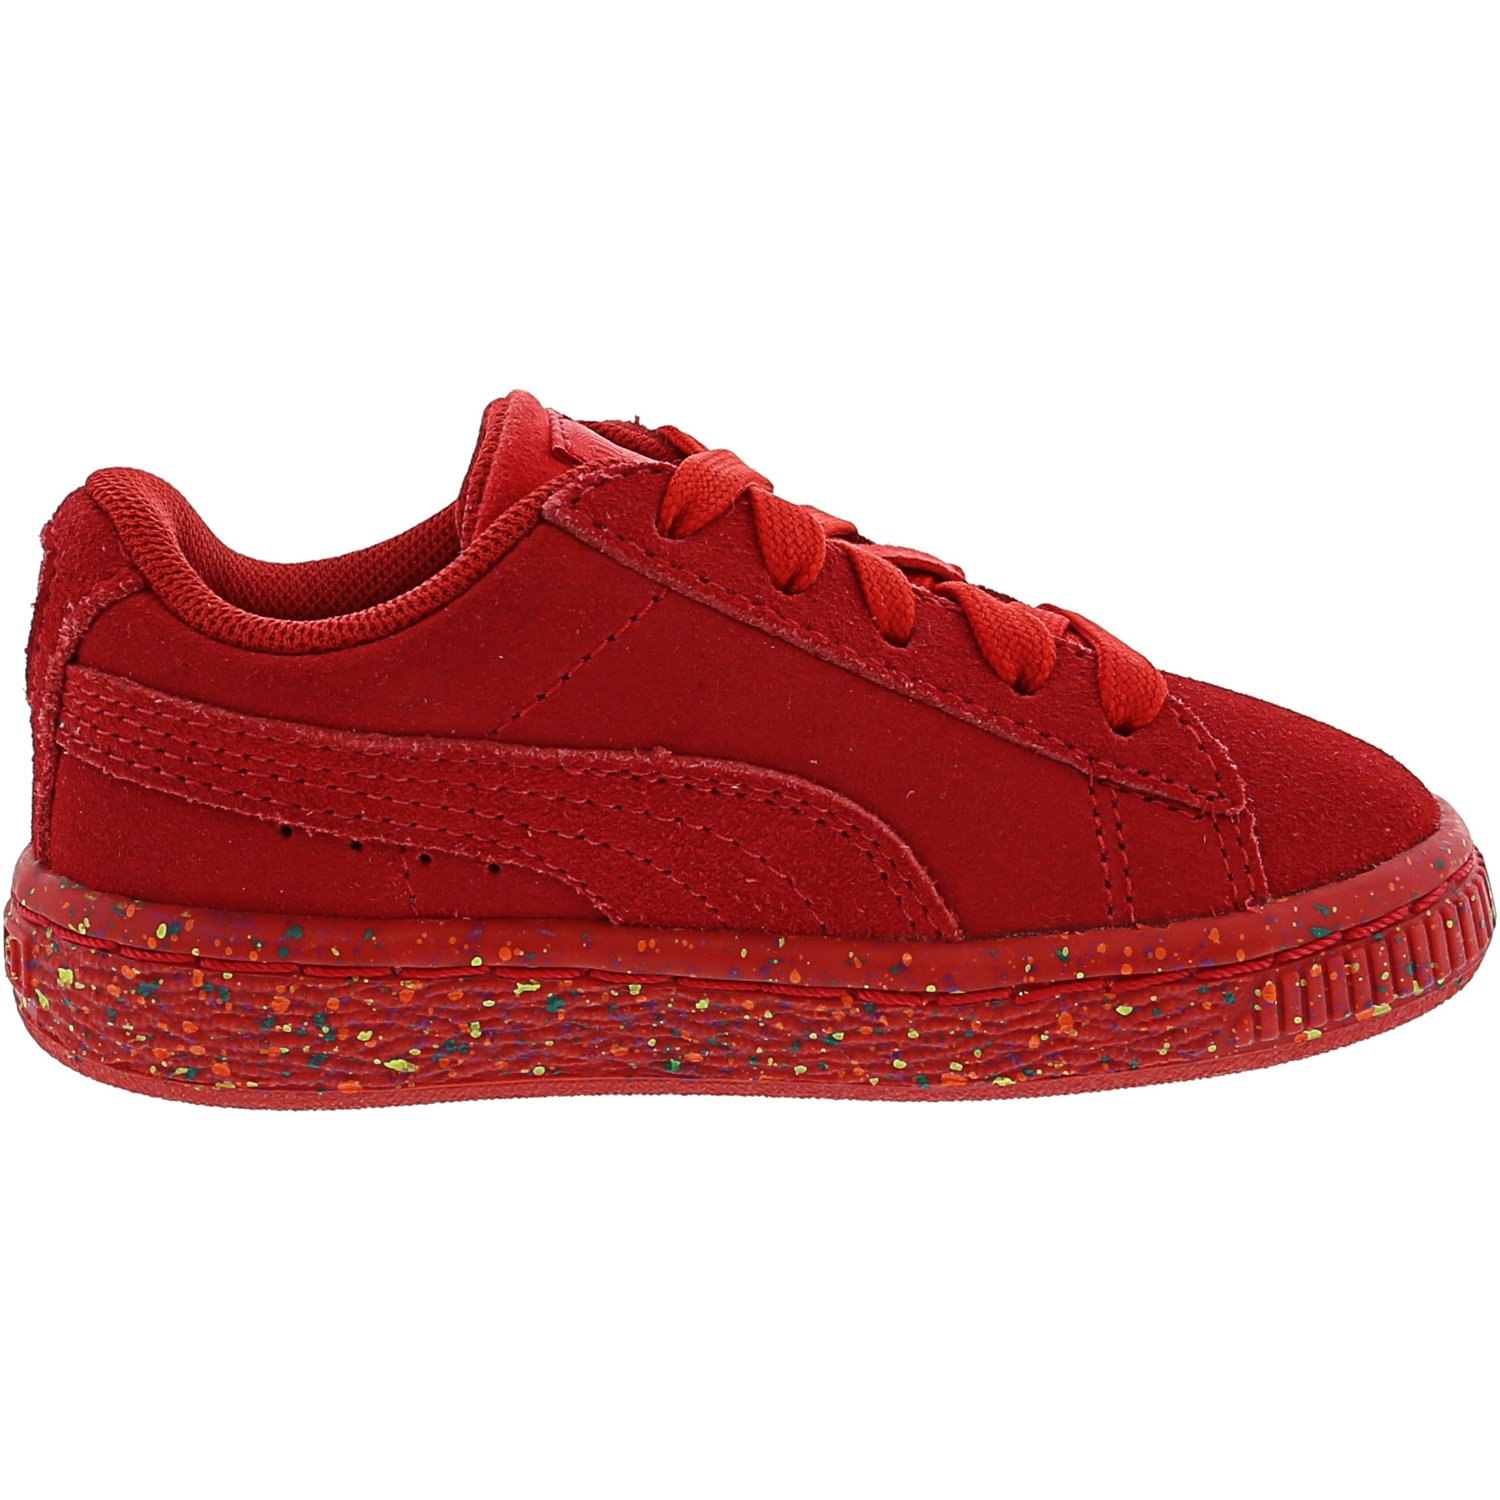 Details about Puma Suede Classic Multi Splatter Ankle High Walking Shoe